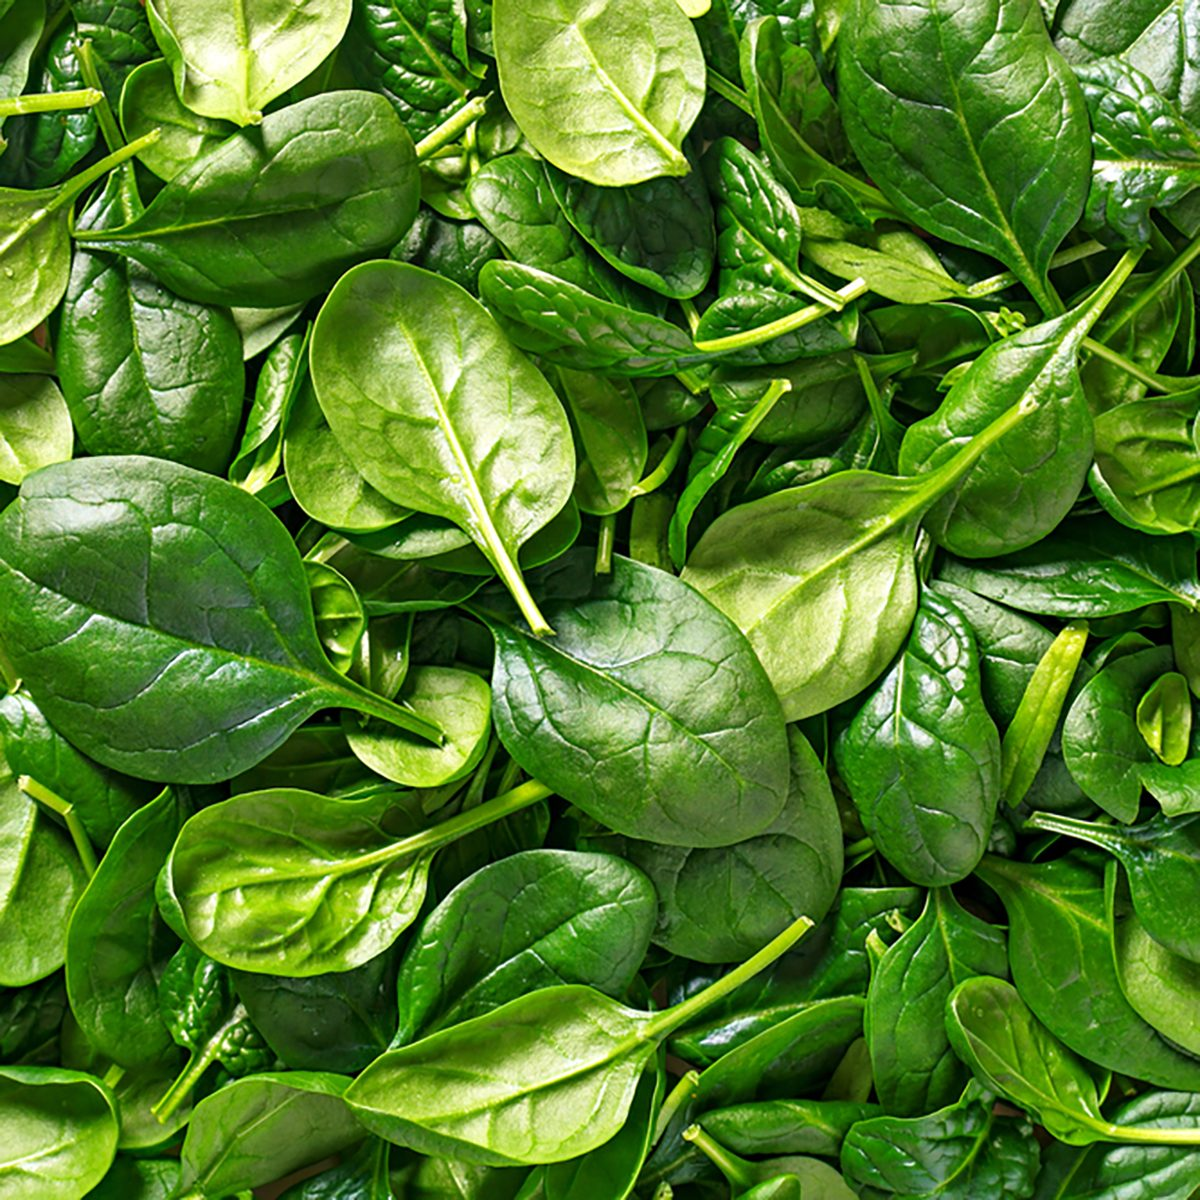 Spinach background full image